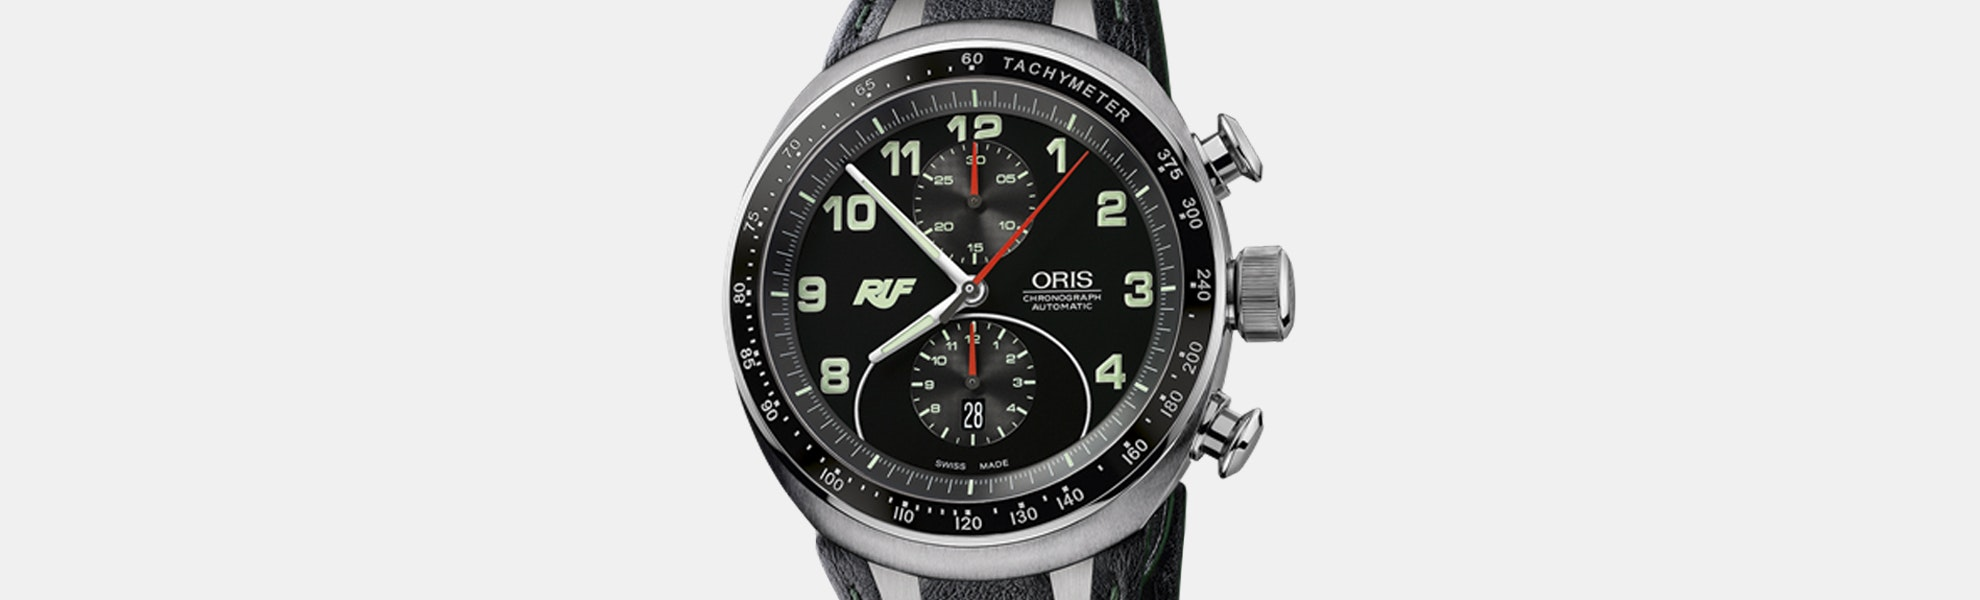 Oris RUF CTR3 Limited Edition Automatic Watch